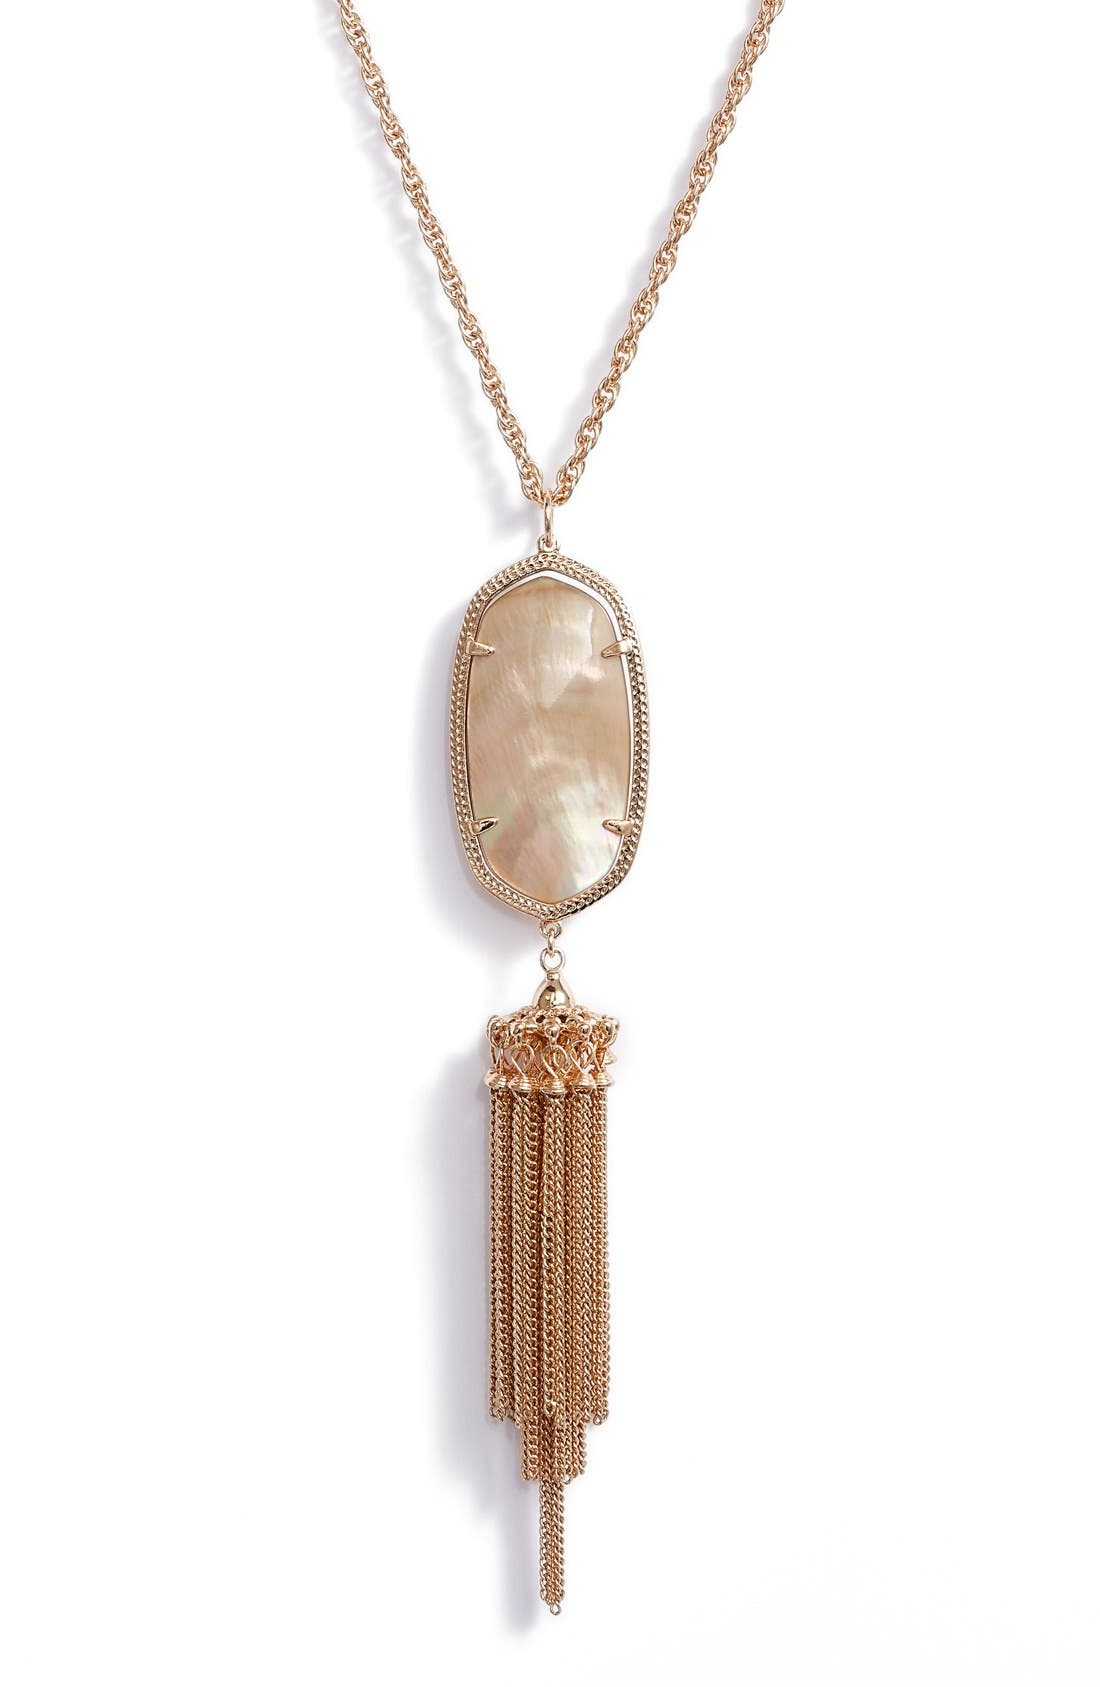 Rayne Stone Tassel Pendant Necklace,                             Alternate thumbnail 2, color,                             Brown Mop/ Rose Gold